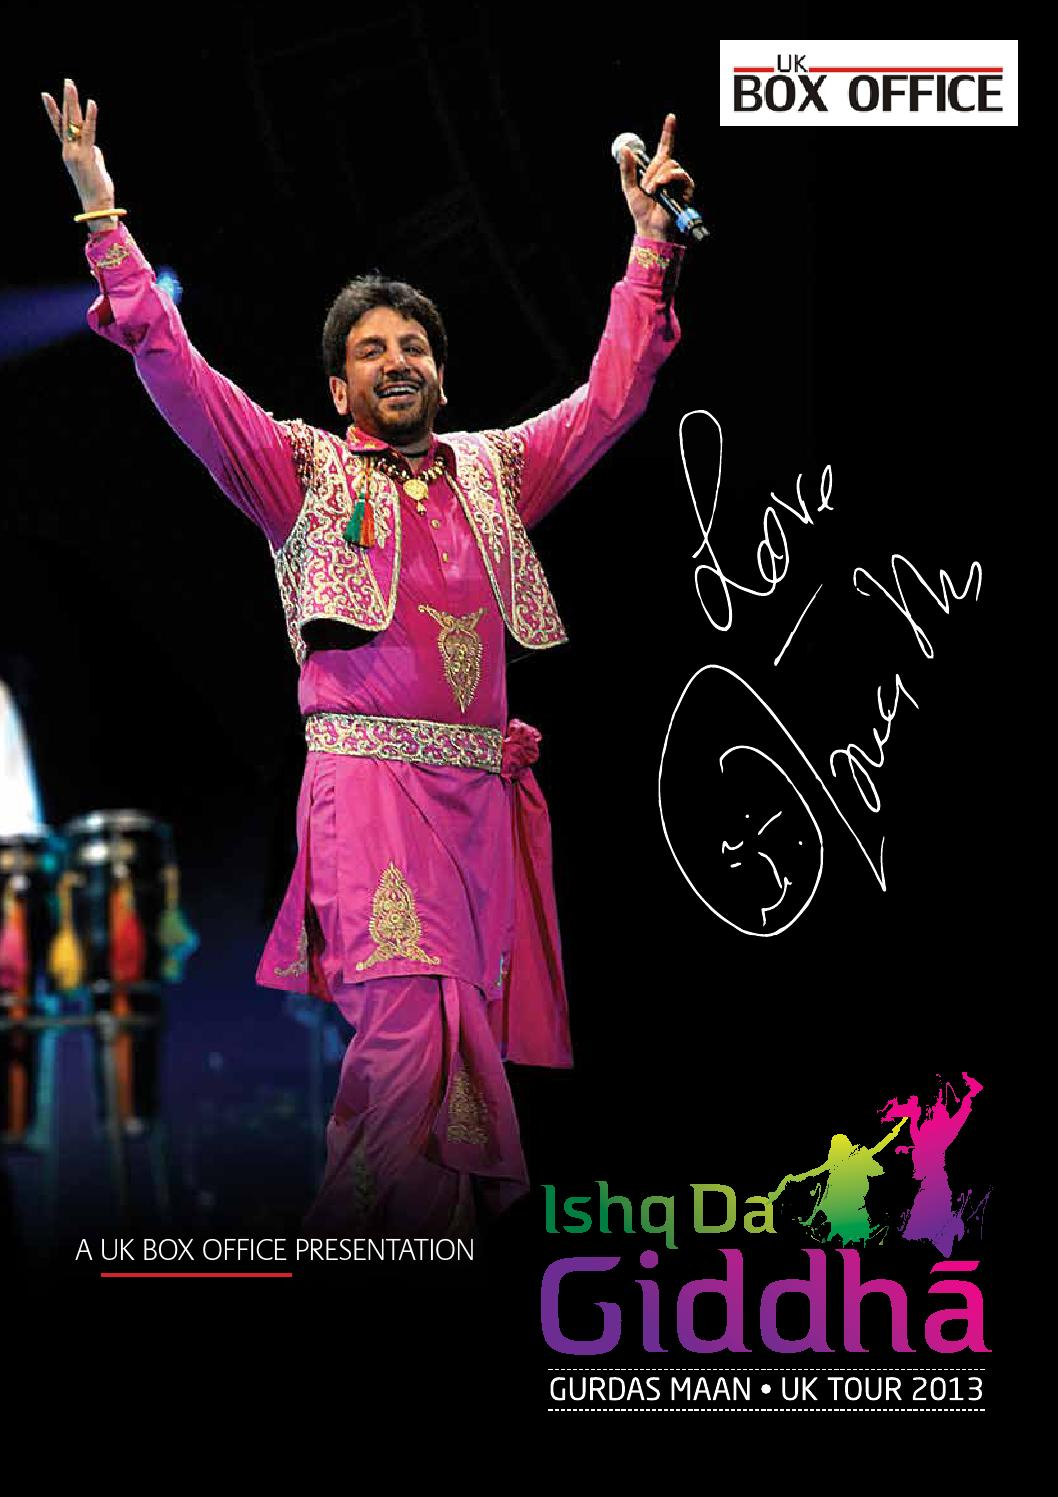 Ishq Da Giddha 2013 by UK Box Office - issuu